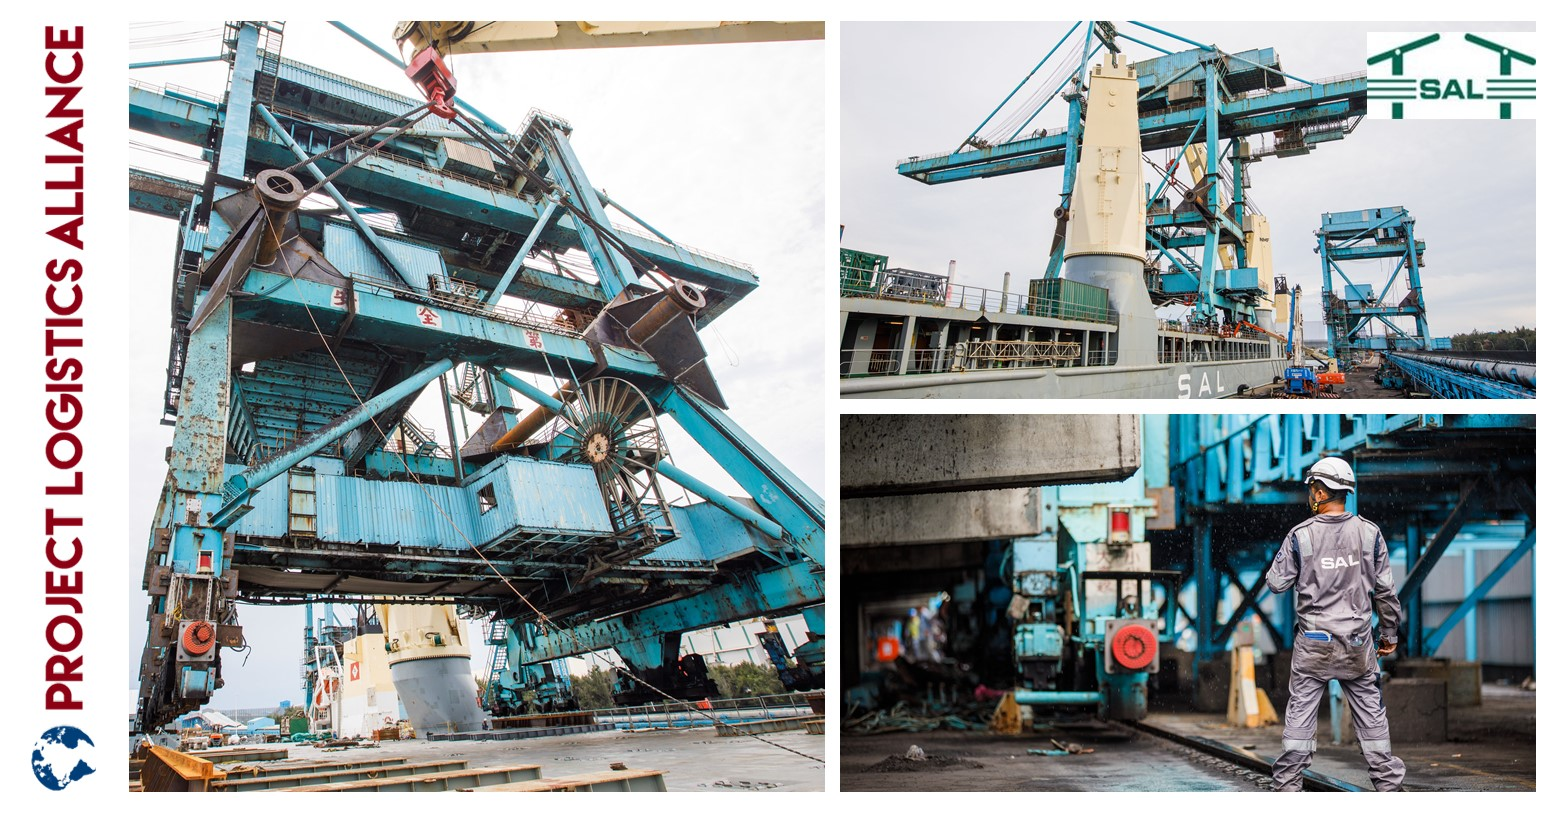 When Skills Matter: SAL Heavy Lift Loads And Discharges Ship Unloaders In Taiwan